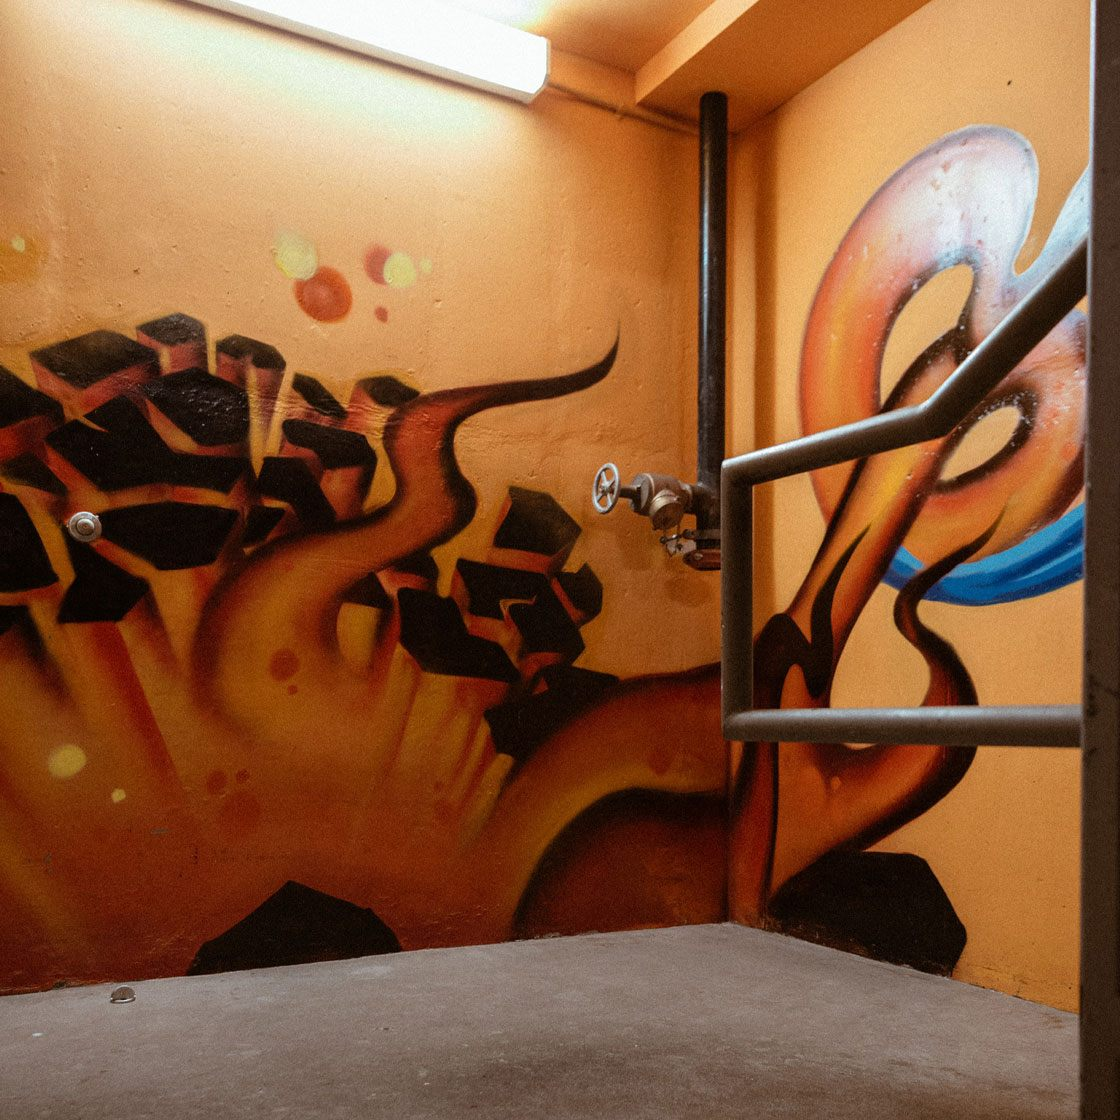 An abstract painted mural in an indoor staircase